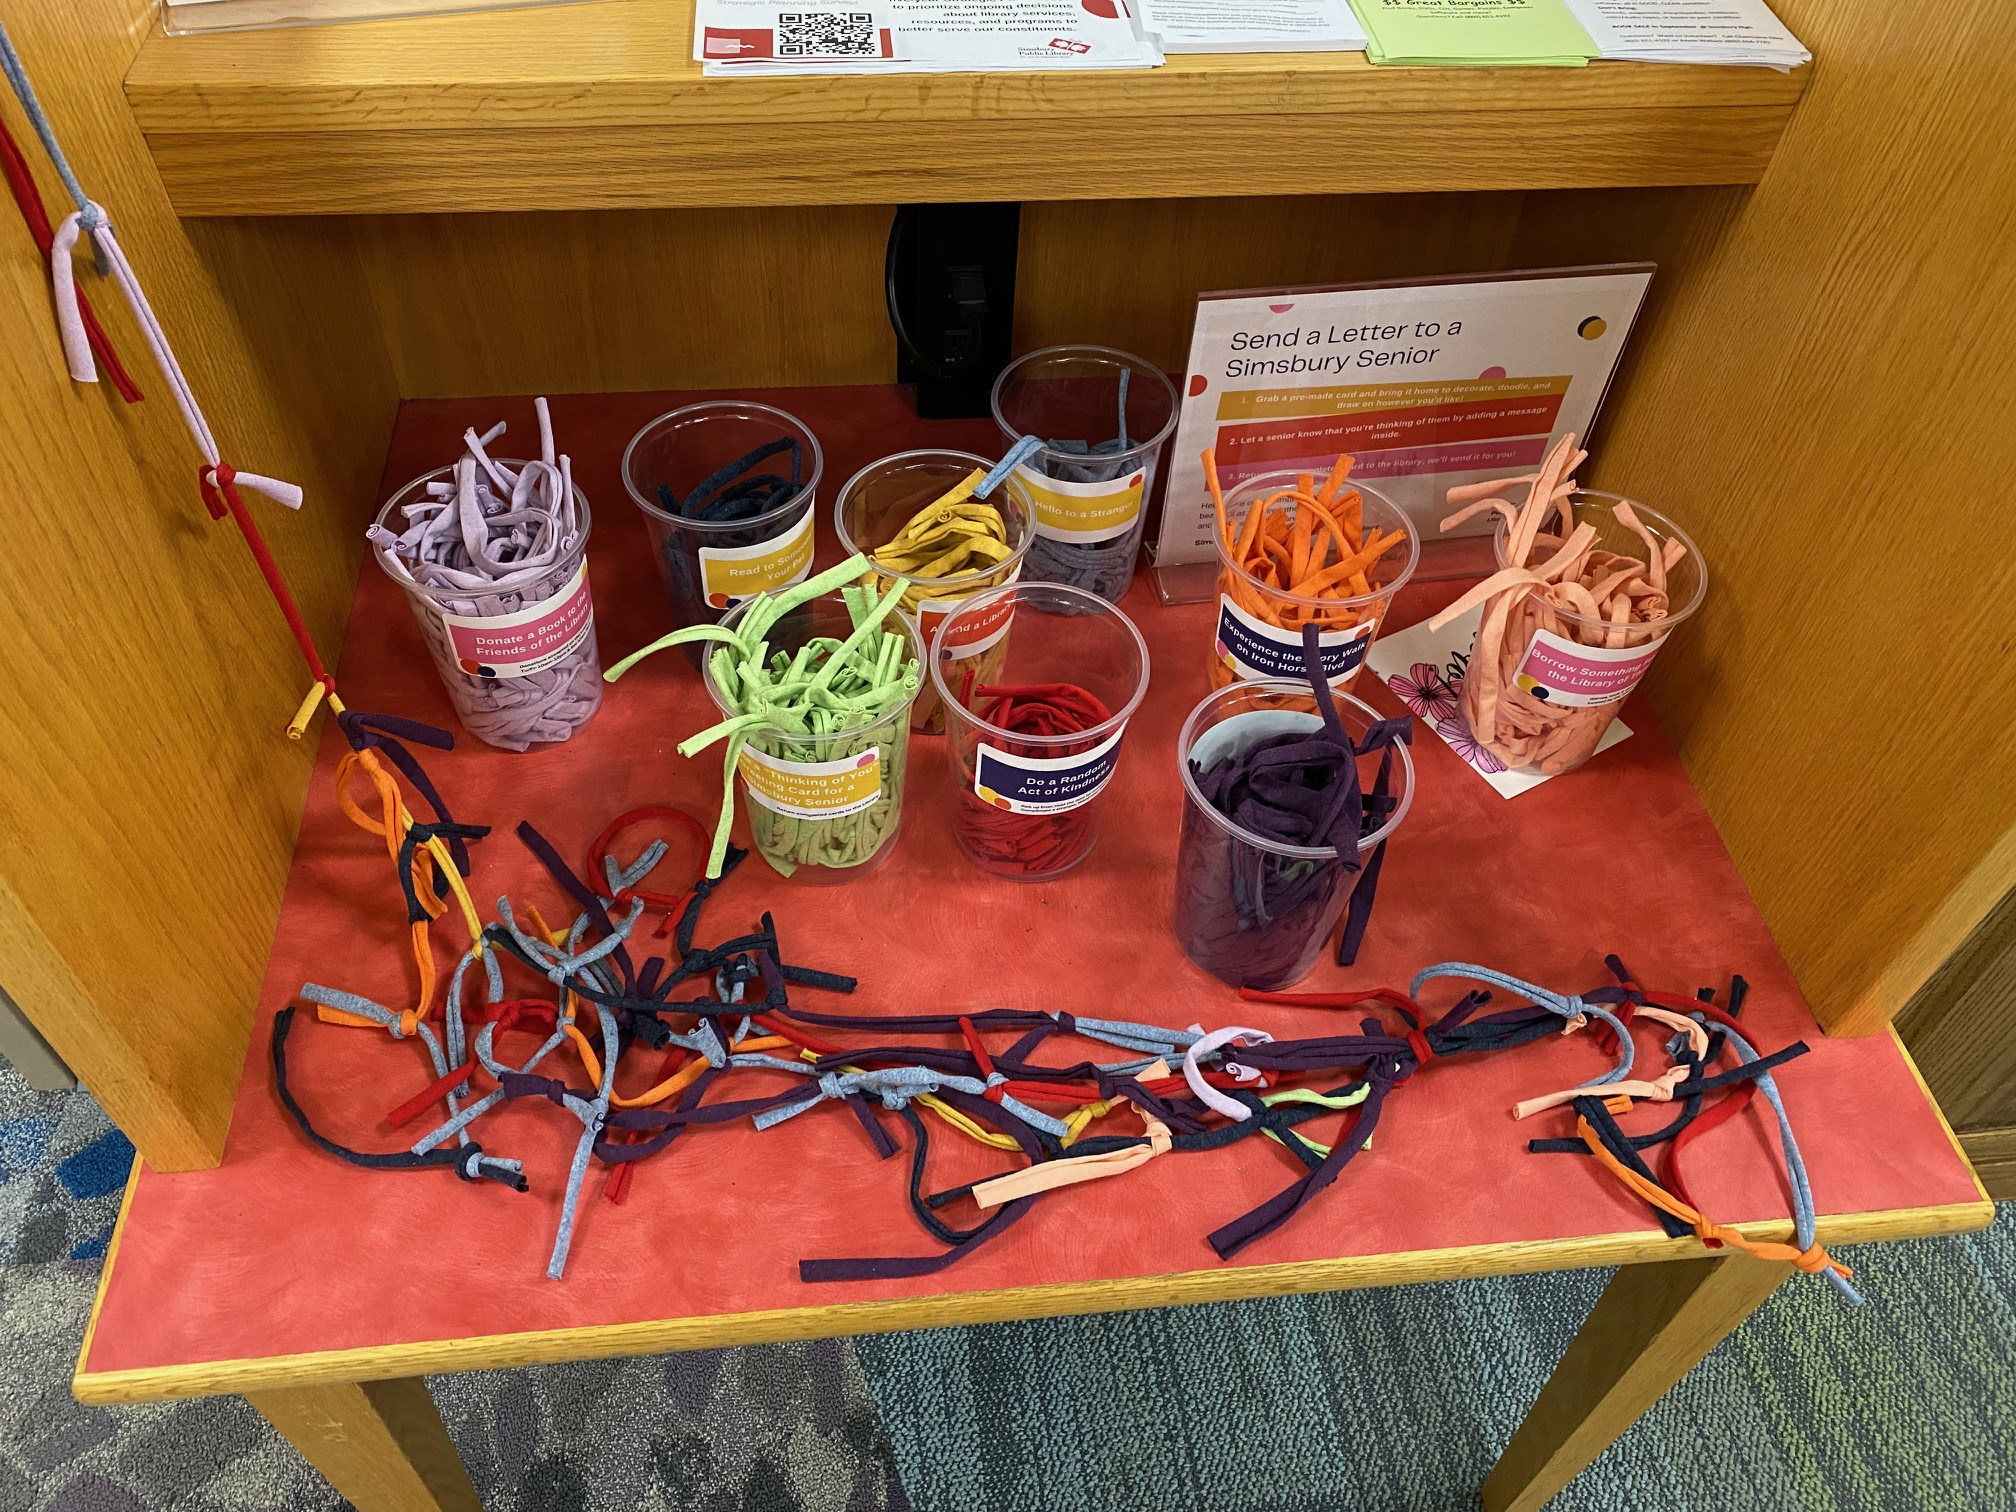 Supplies for a community art project at the Simsbury Public Library